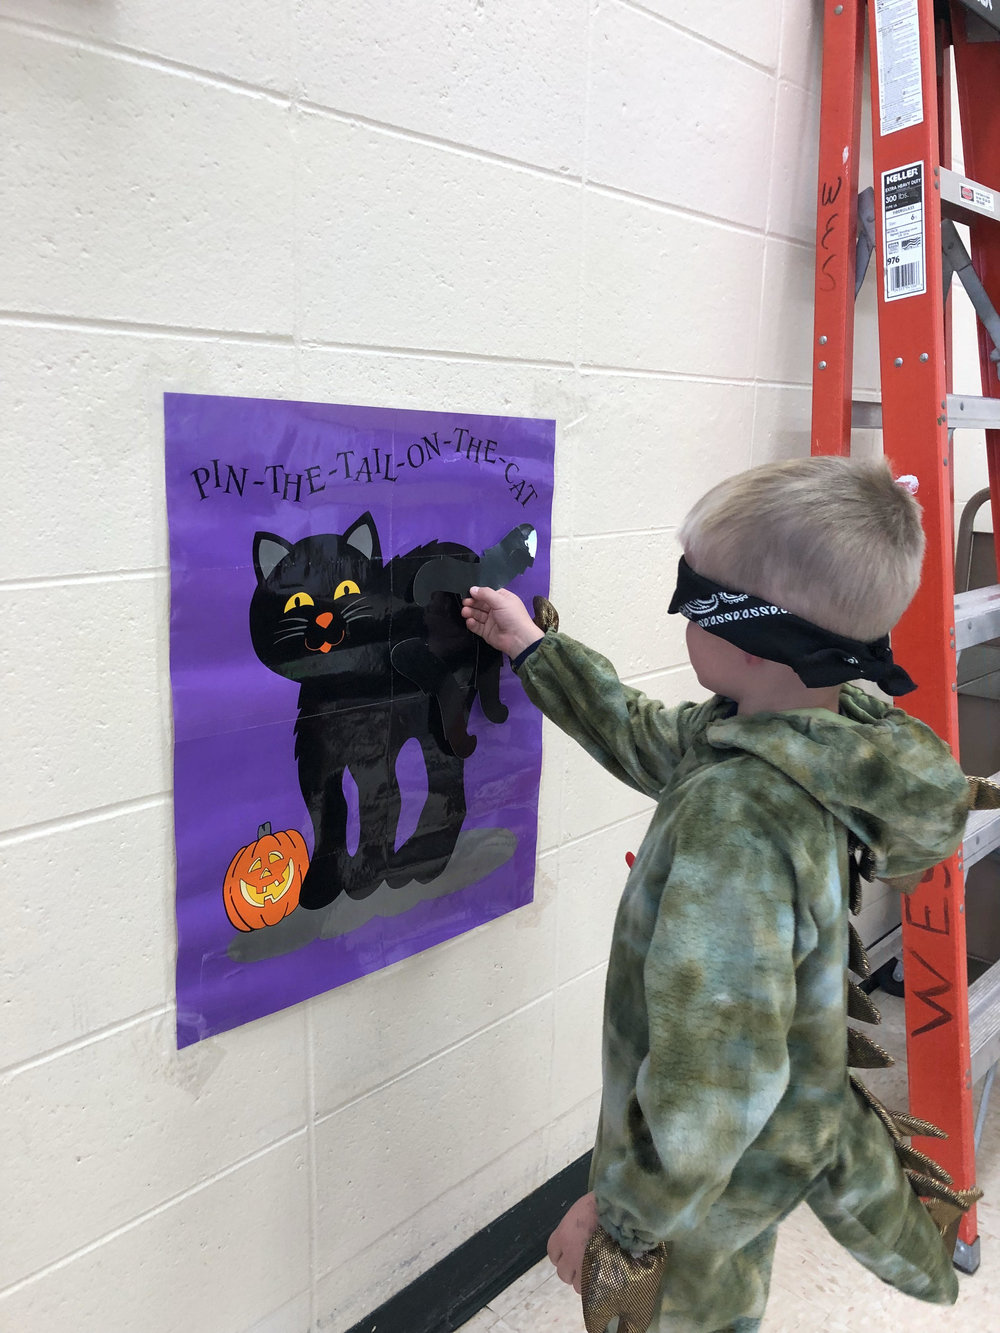 pin the tail on the cat!